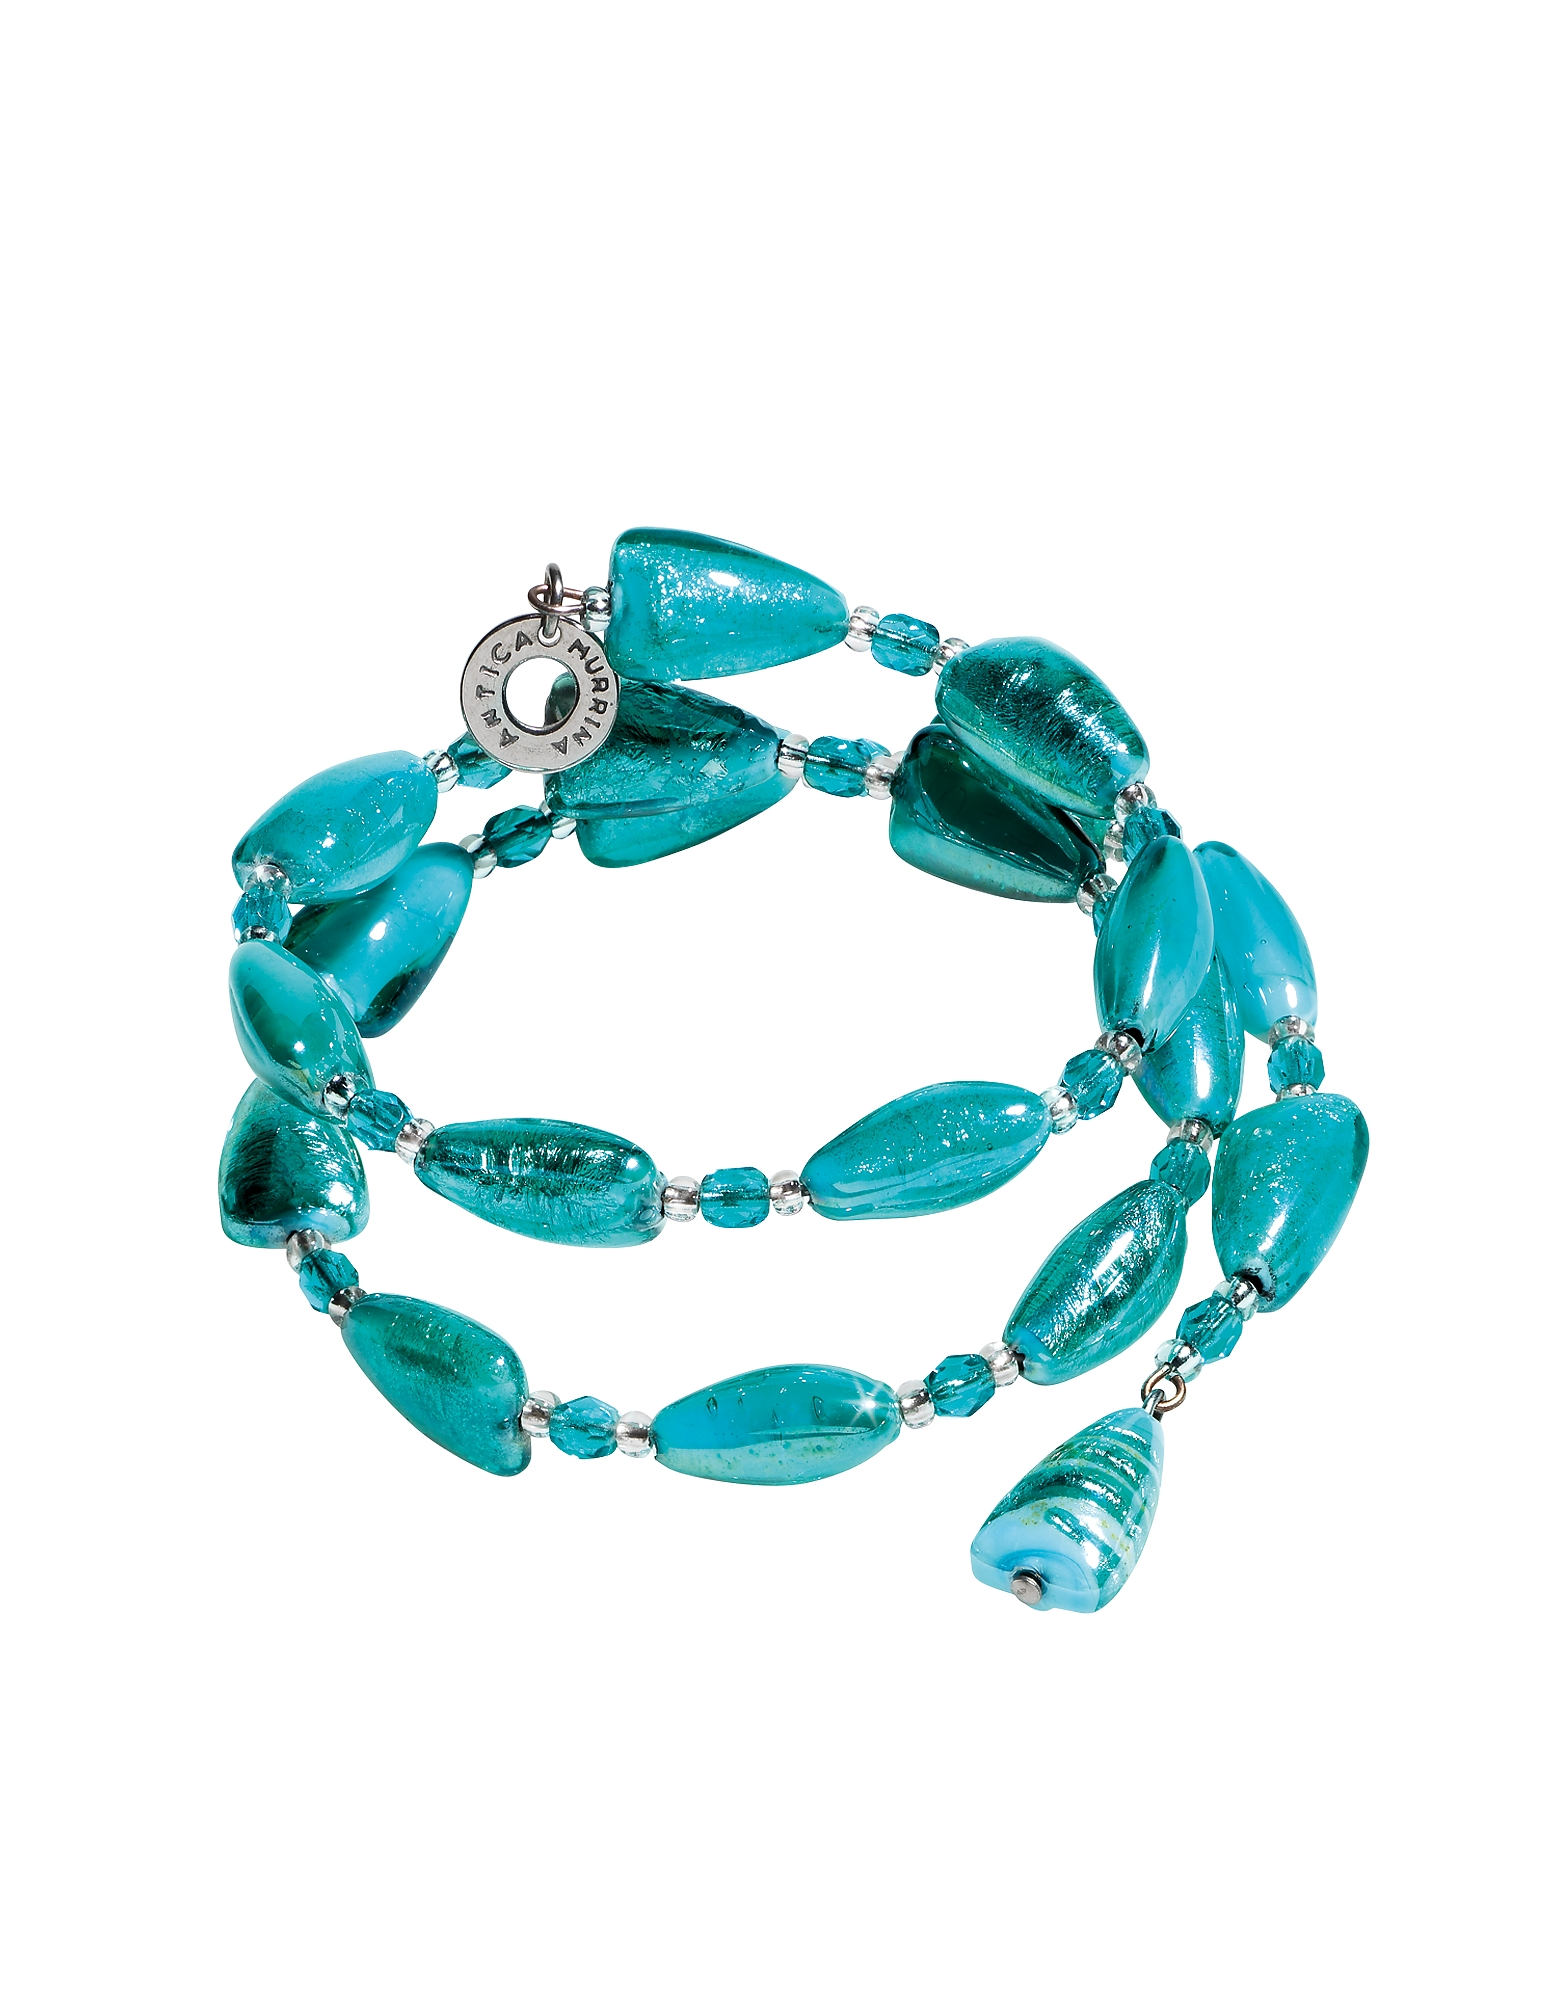 Antica Murrina Bracelets, Marina 1 Rigido - Turquoise Green Murano Glass and Silver Leaf Bracelet